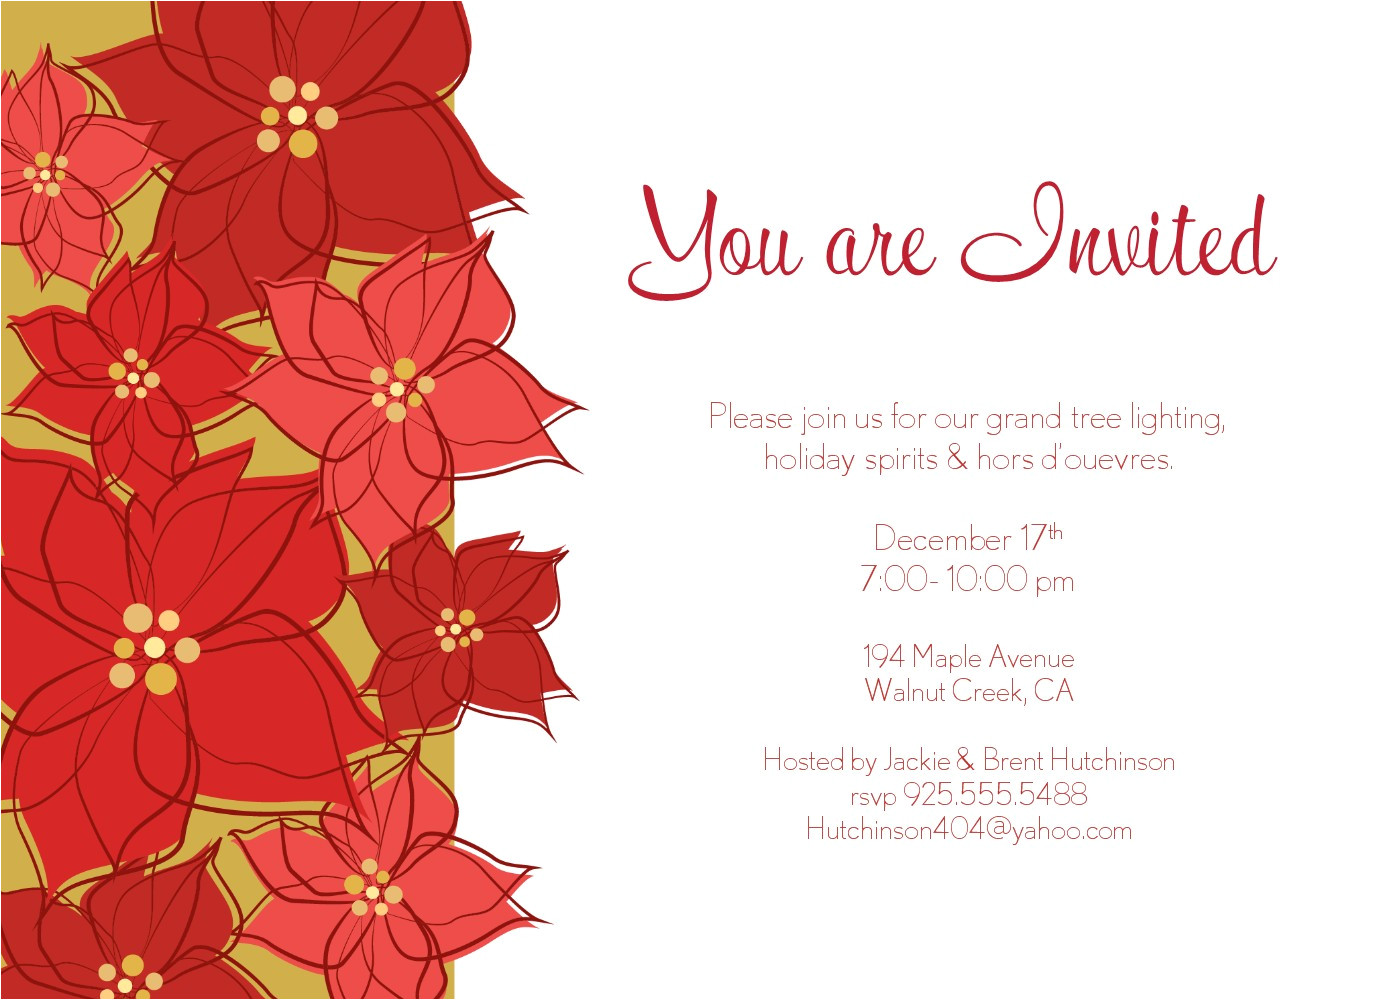 Christmas Holiday Party Email Invitation Template for Outlook Christmas Invitations for Outlook Party Invitations Ideas